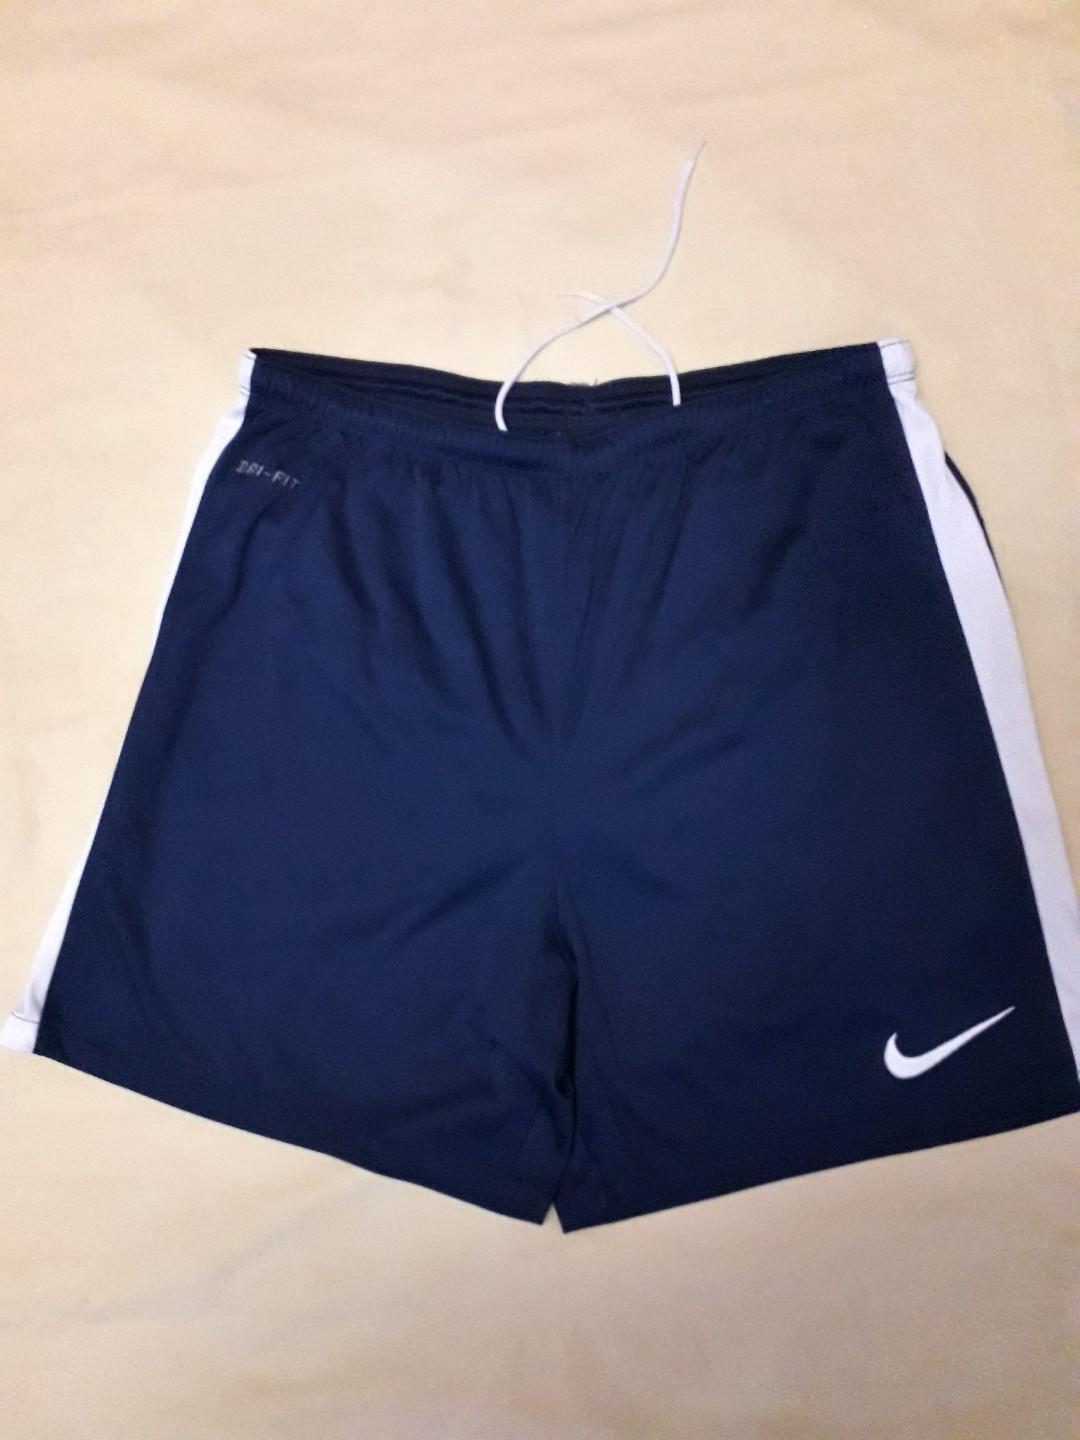 Nike dry -fit